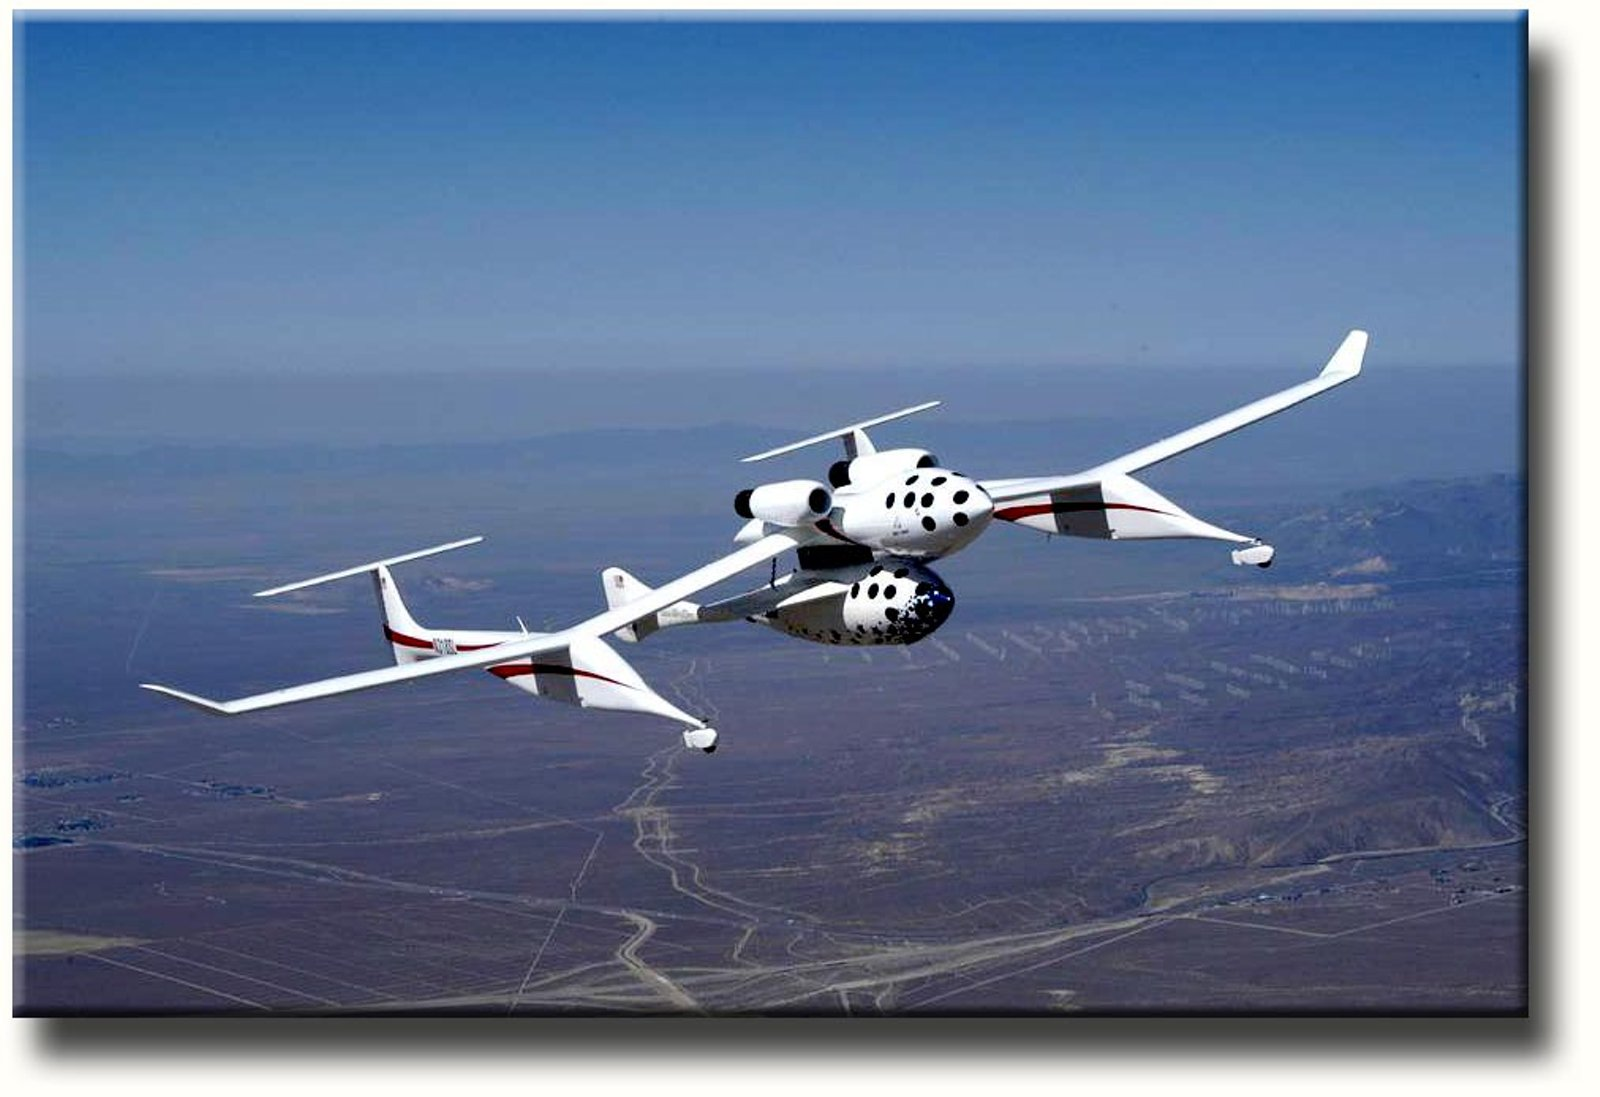 spaceshipone_edited-1.jpg